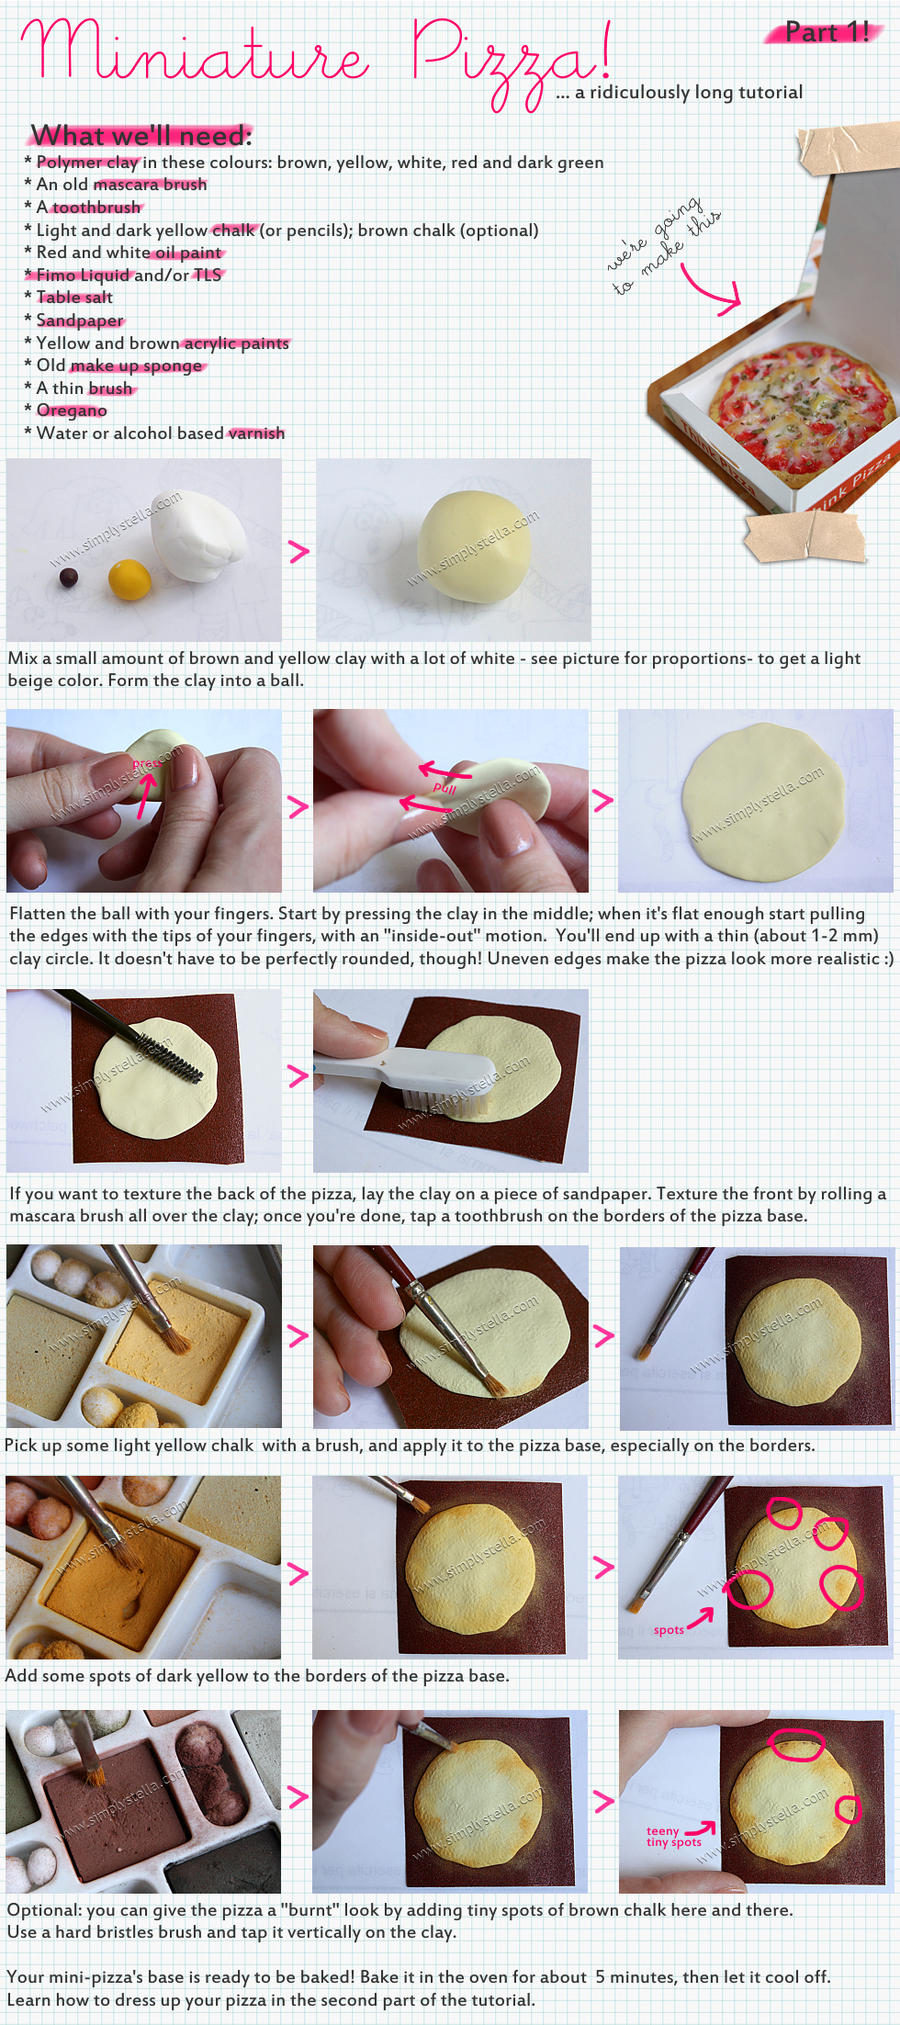 Miniature Pizza Tutorial - 1 by thinkpastel